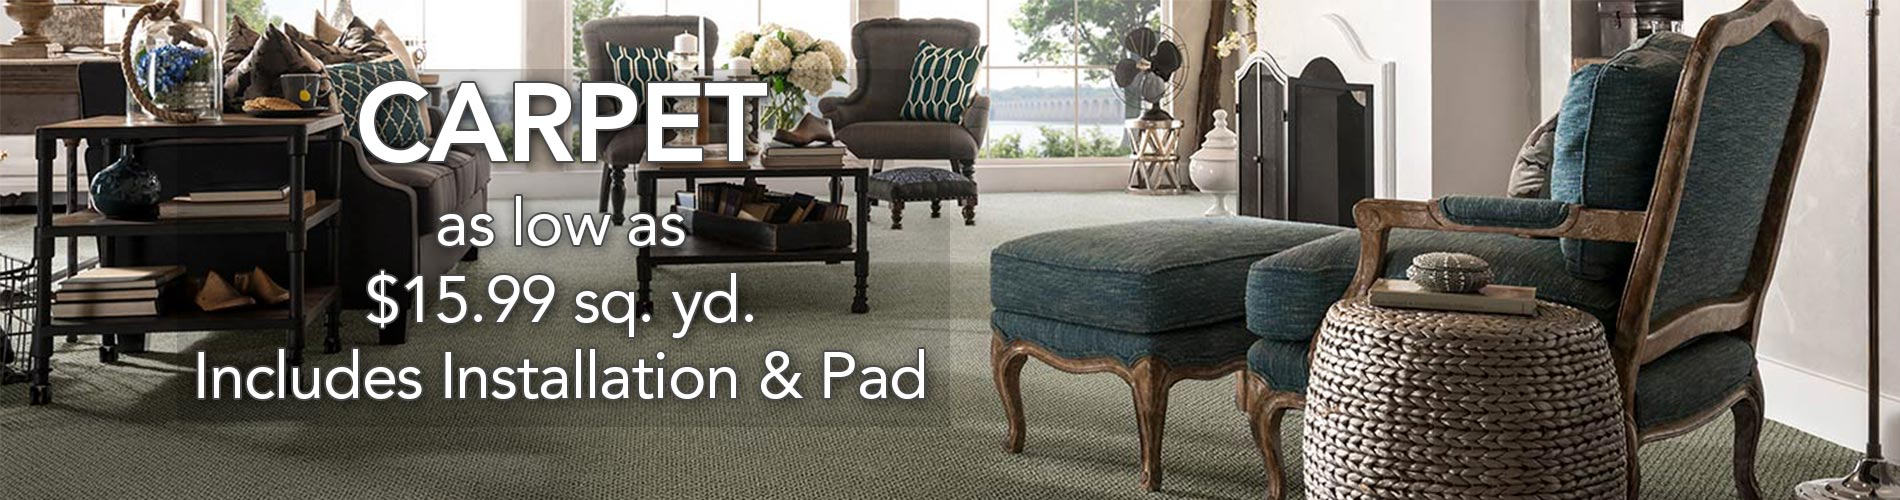 Carpet on sale as low as $15.99 sq.yd. including pad and installation!